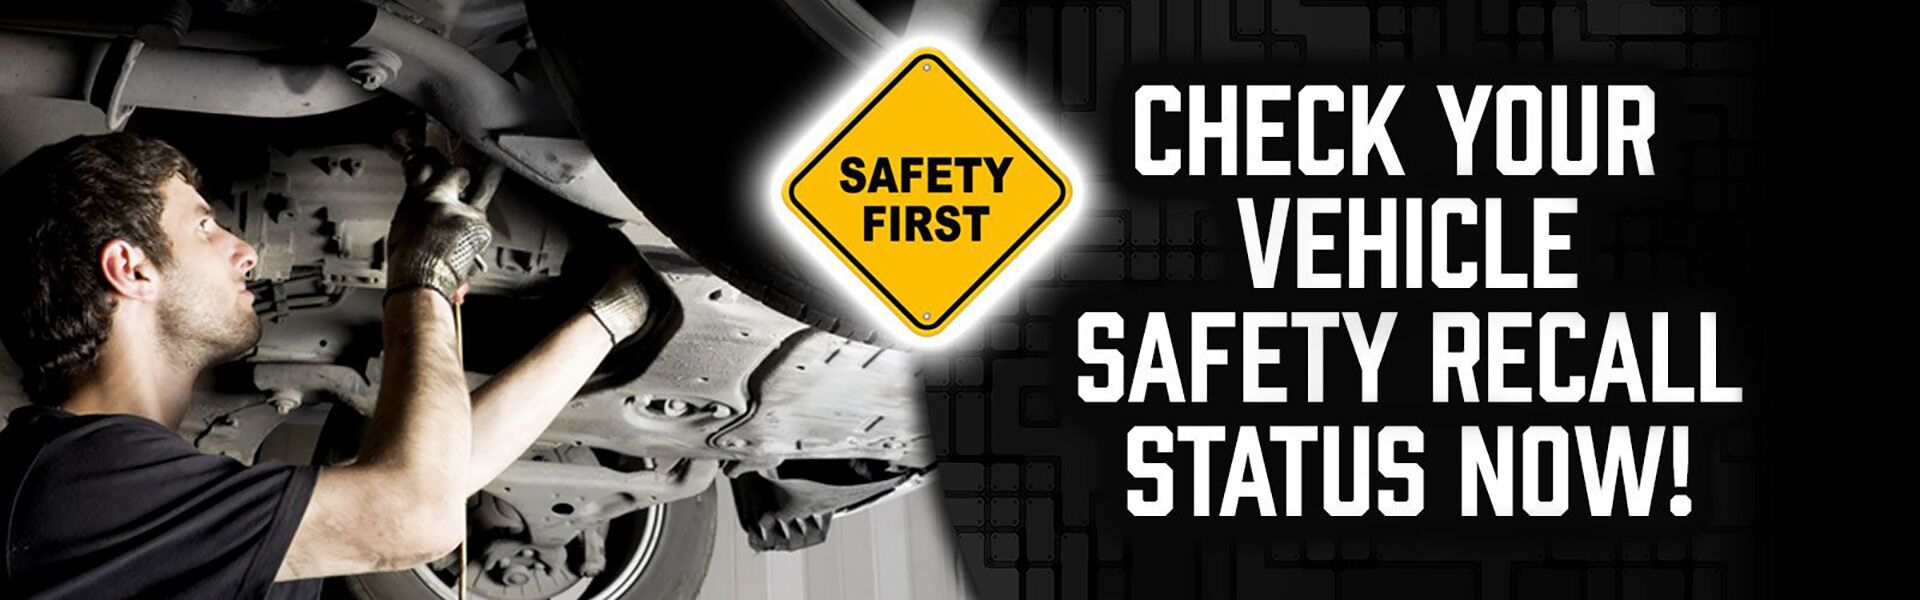 Check Your Vehicle Safety Recall Status Now!